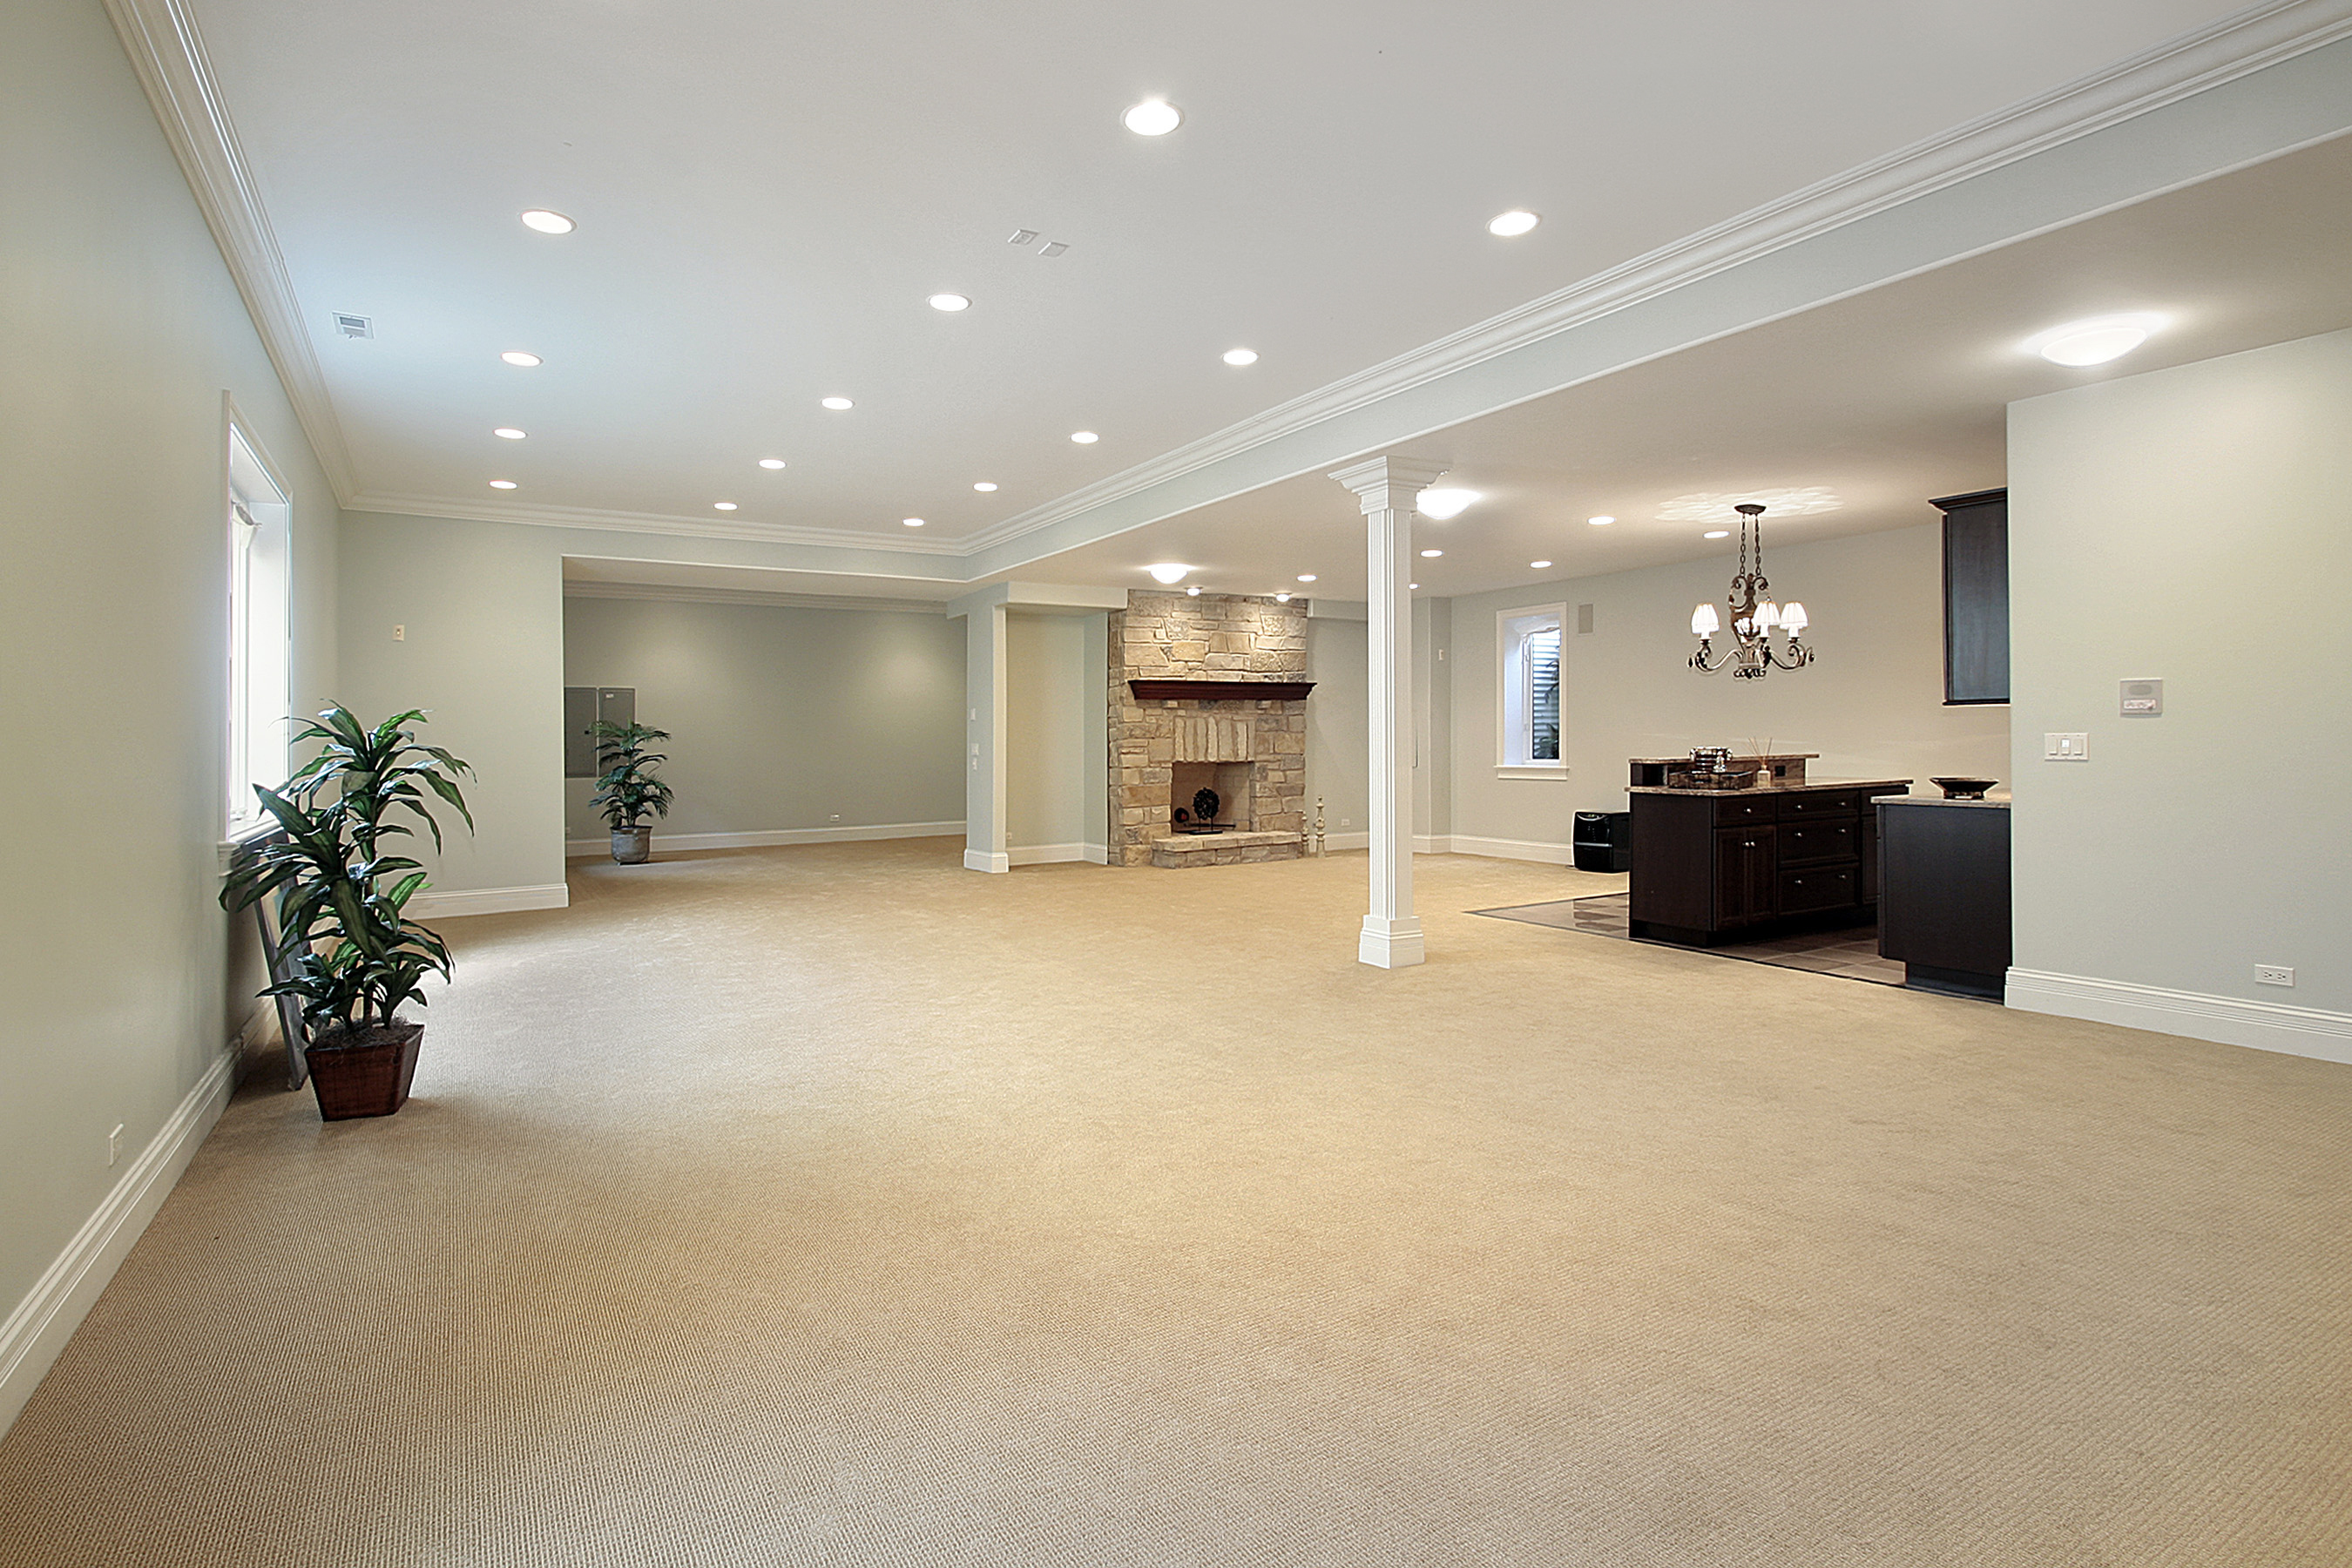 Cheap carpet installation nj carpet review for Floors floors floors nj